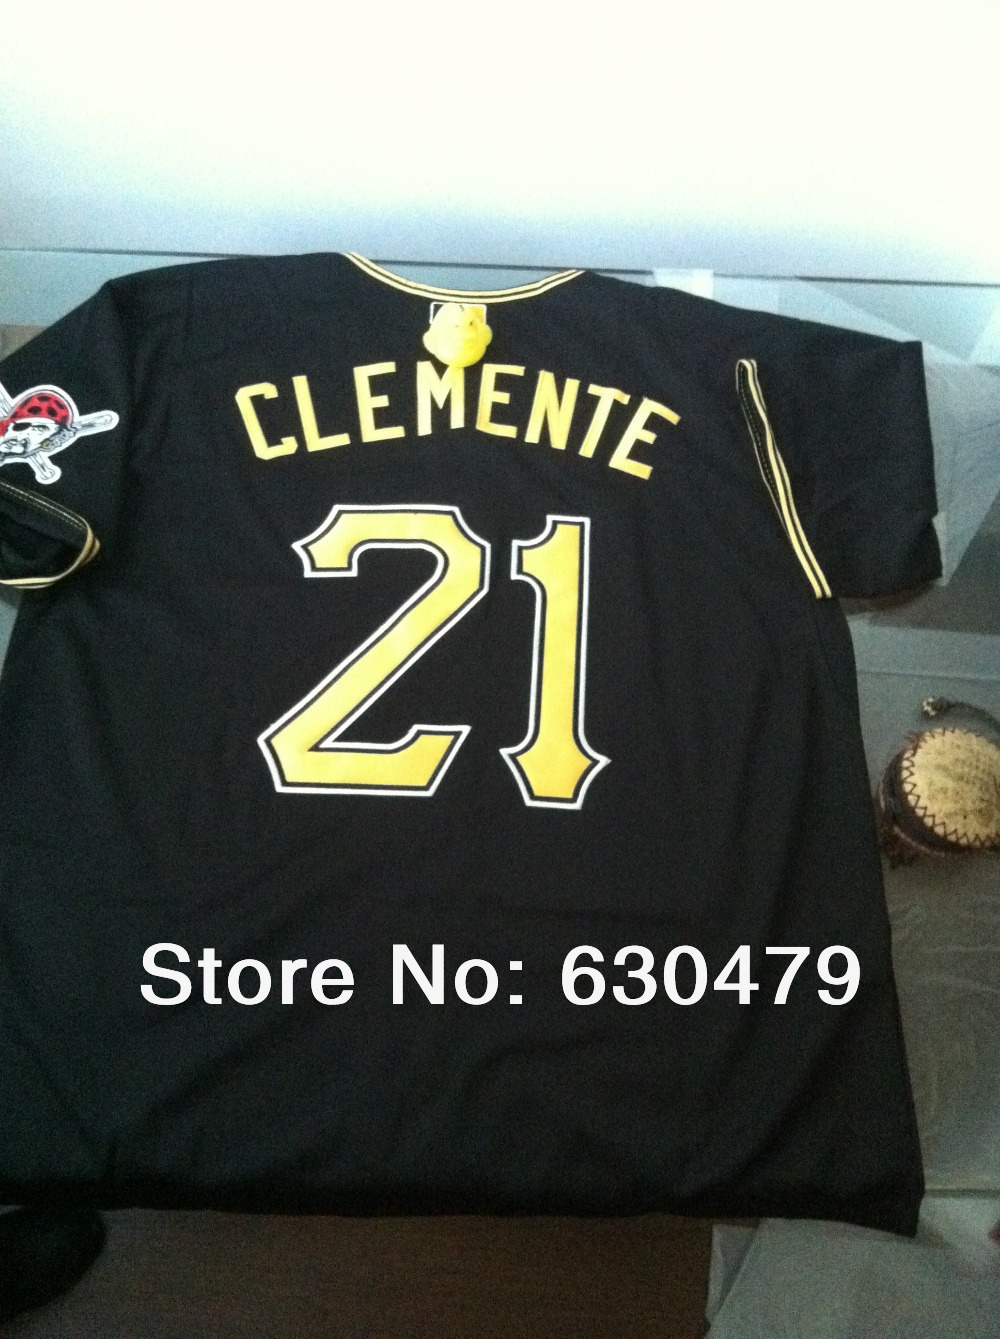 pittsburgh pirates 21